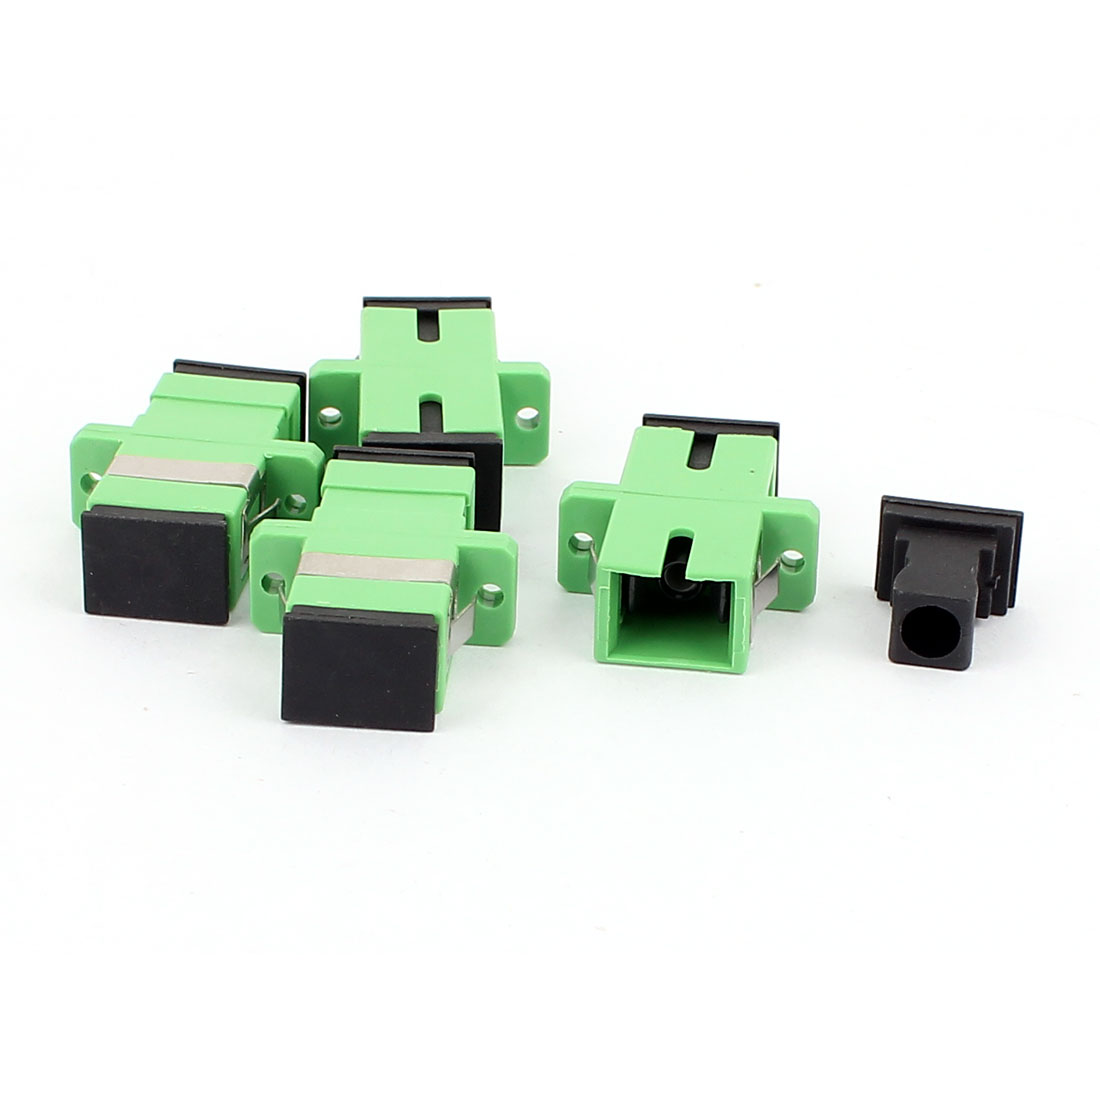 4 Pcs Single-mode SC-SC APC Simplex Fibre Couplers Flange Adapters Optical Fiber Connectors